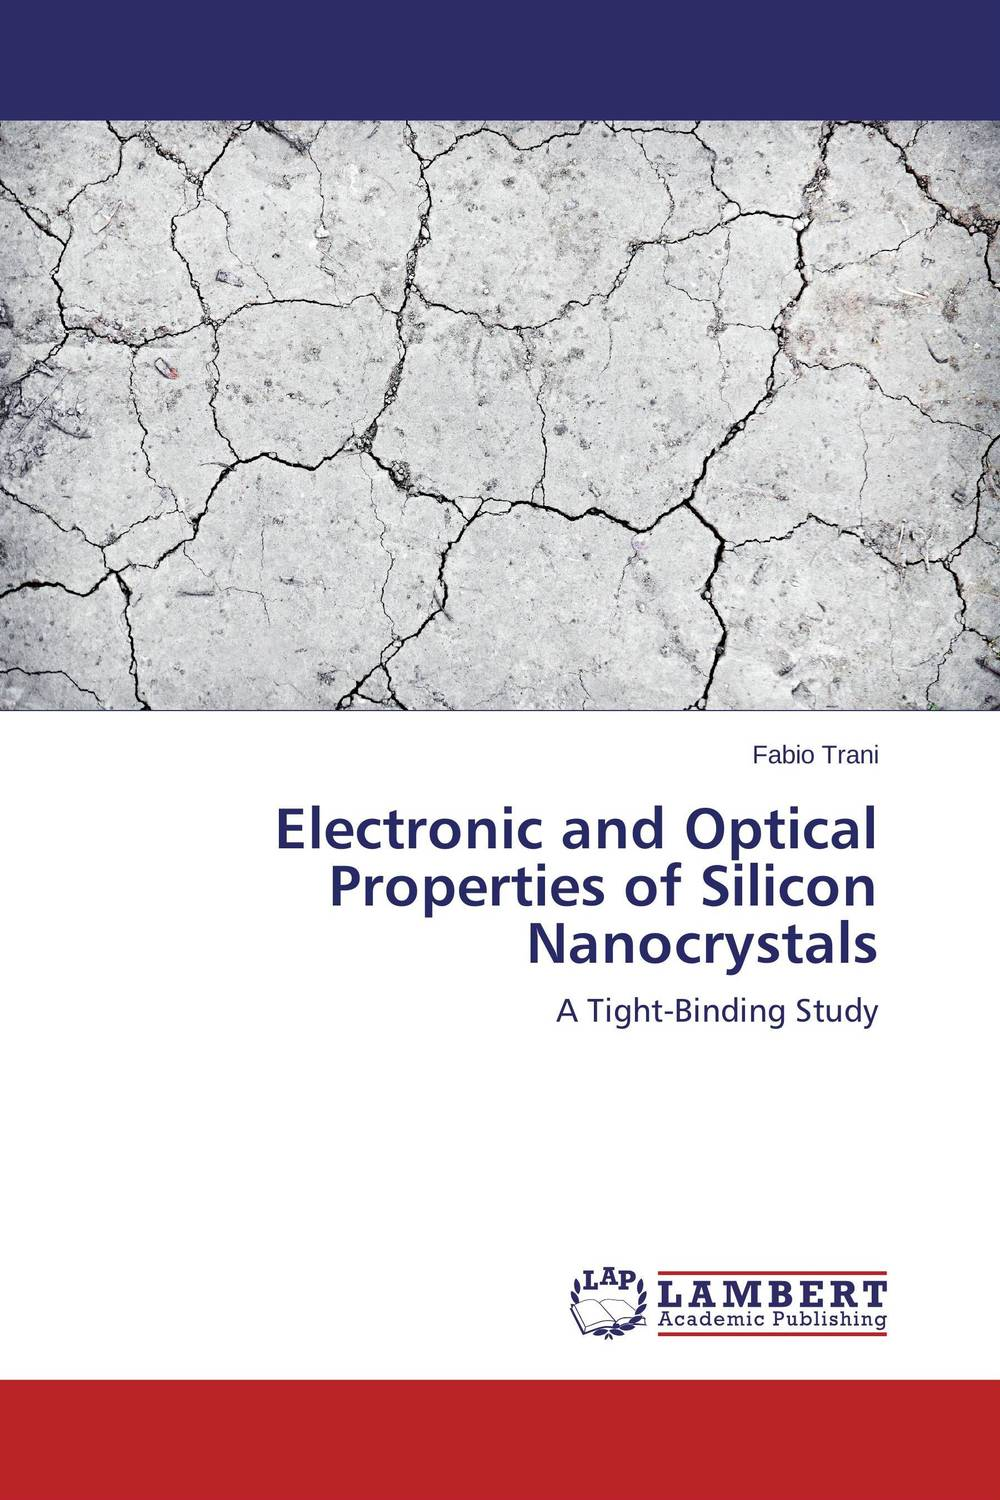 Electronic and Optical Properties of Silicon Nanocrystals optical and electronic properties of diamondoids